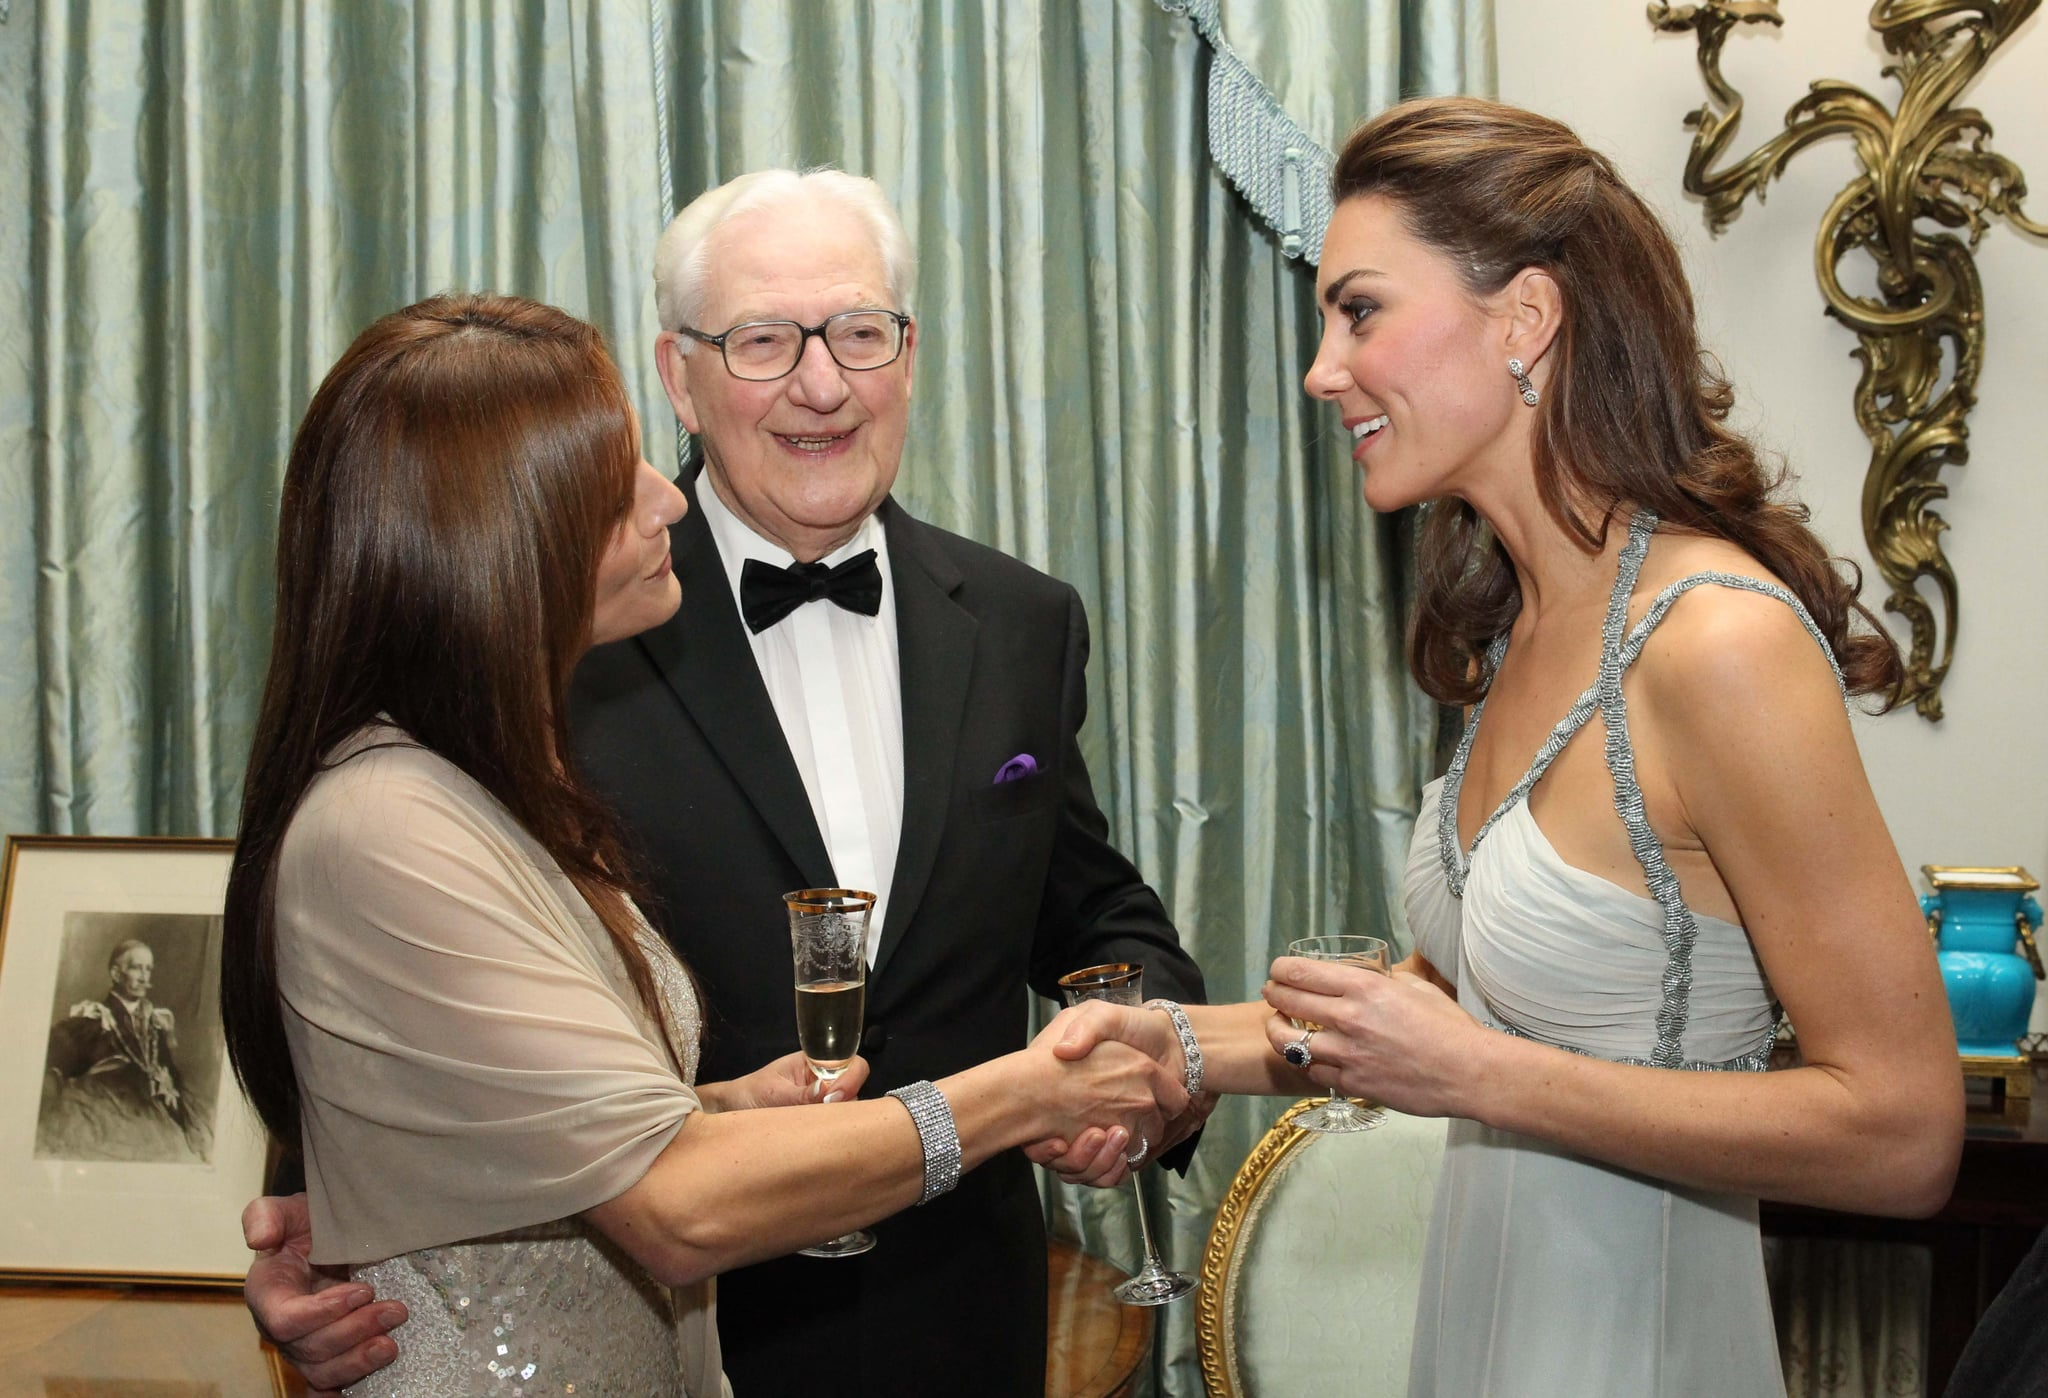 Kate Middleton at her first ever solo royal engagement.